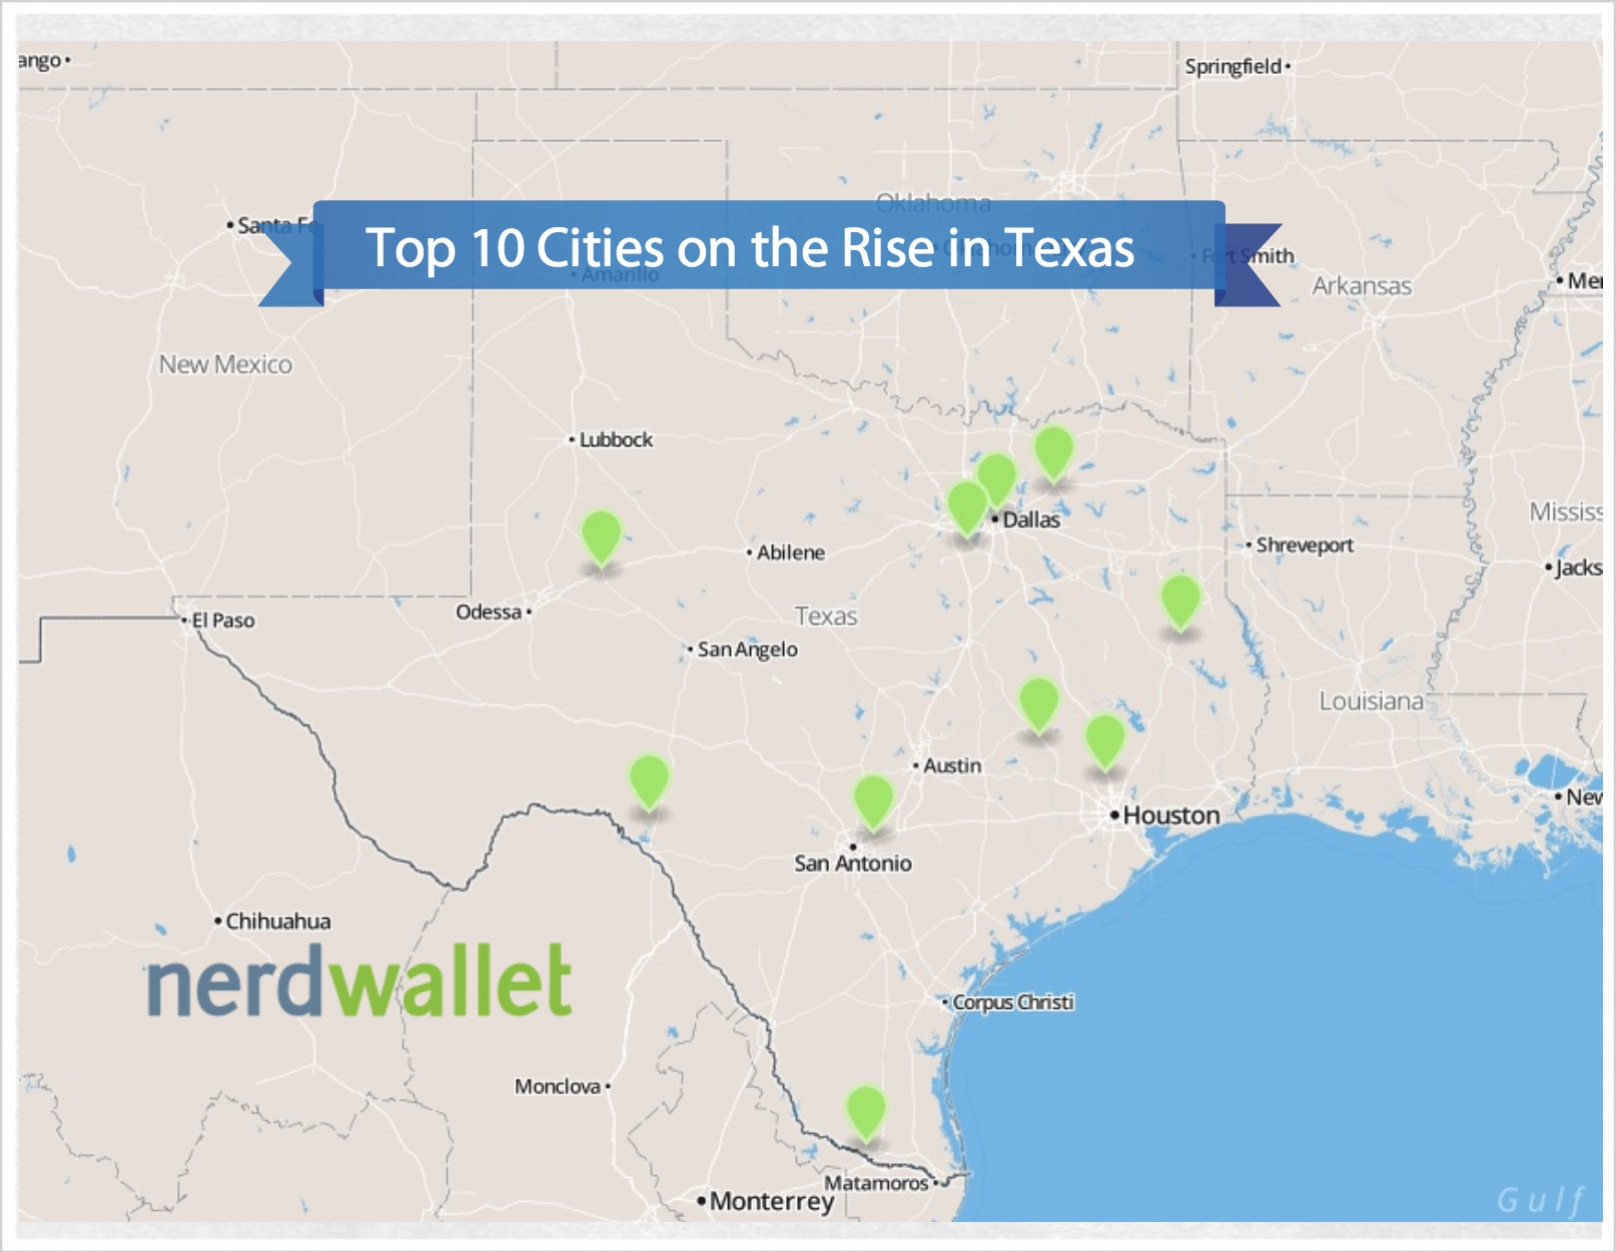 Cities on the Rise in Texas